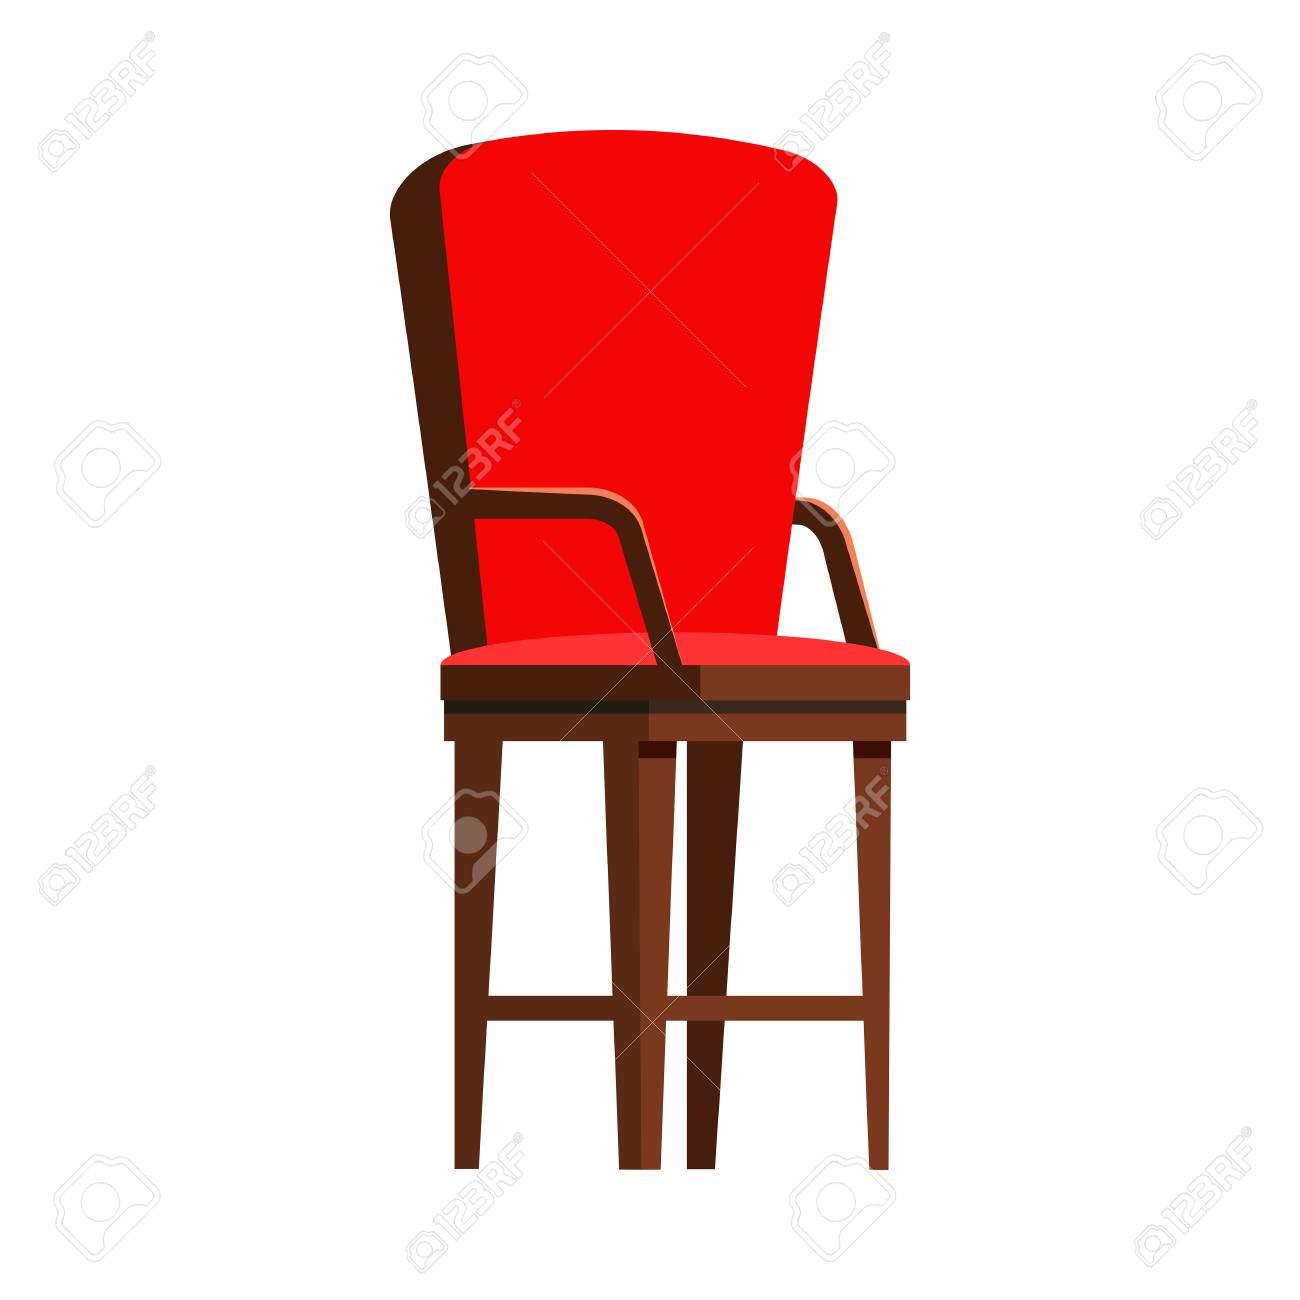 Red wooden chair flat icon. Seat, arm chair, kitchen chair. Chairs..